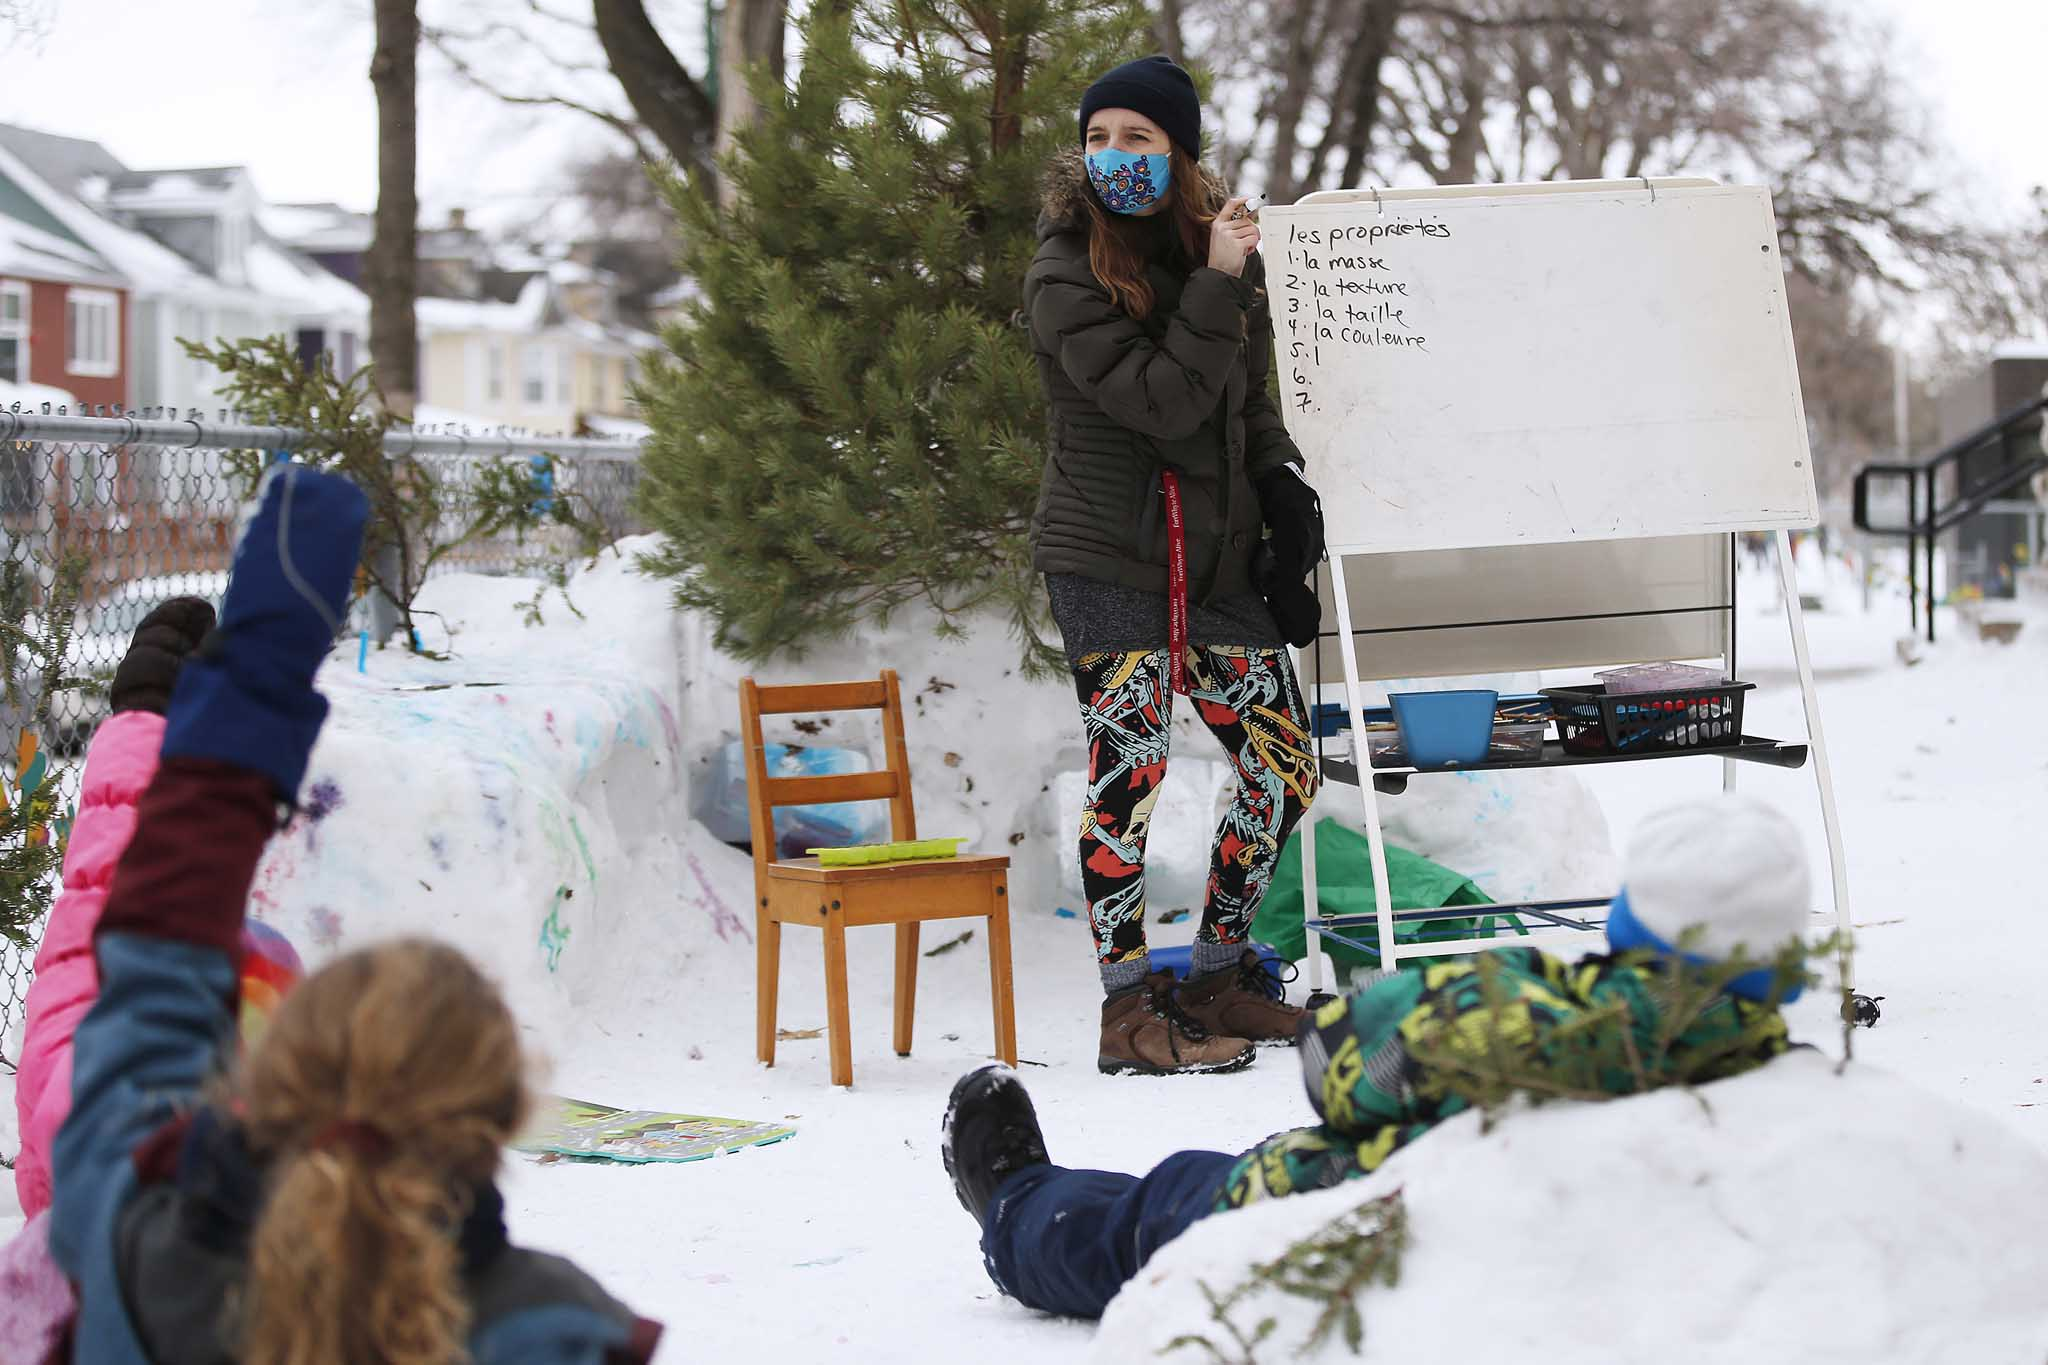 The success of an initial outdoor period has led to daily snow class lessons.